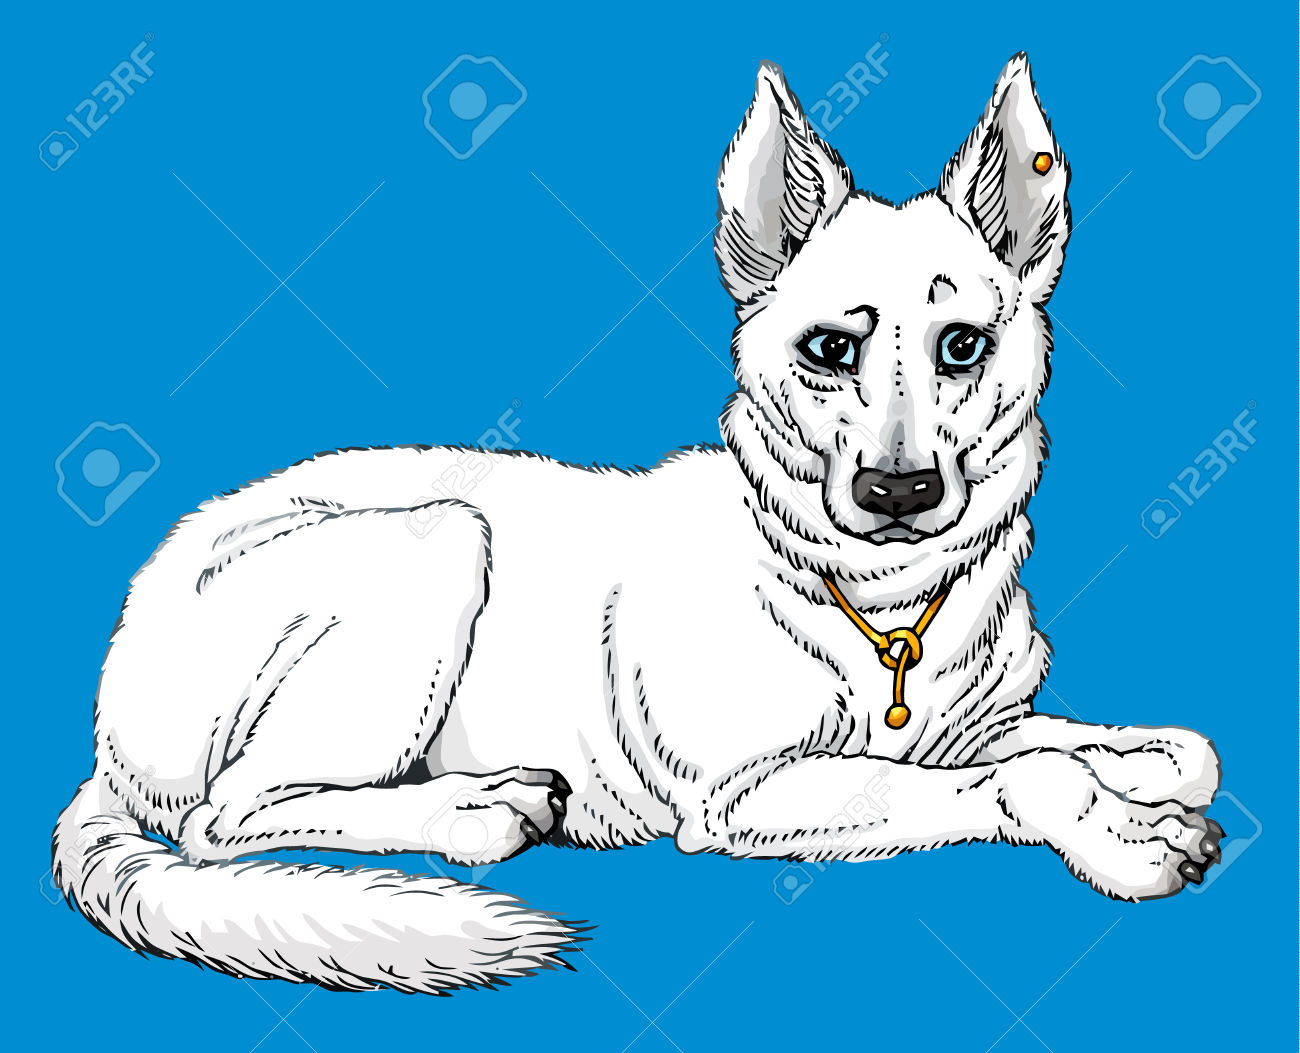 Berger Blanc Suisse Or Swiss White Shepherd Royalty Free Cliparts.